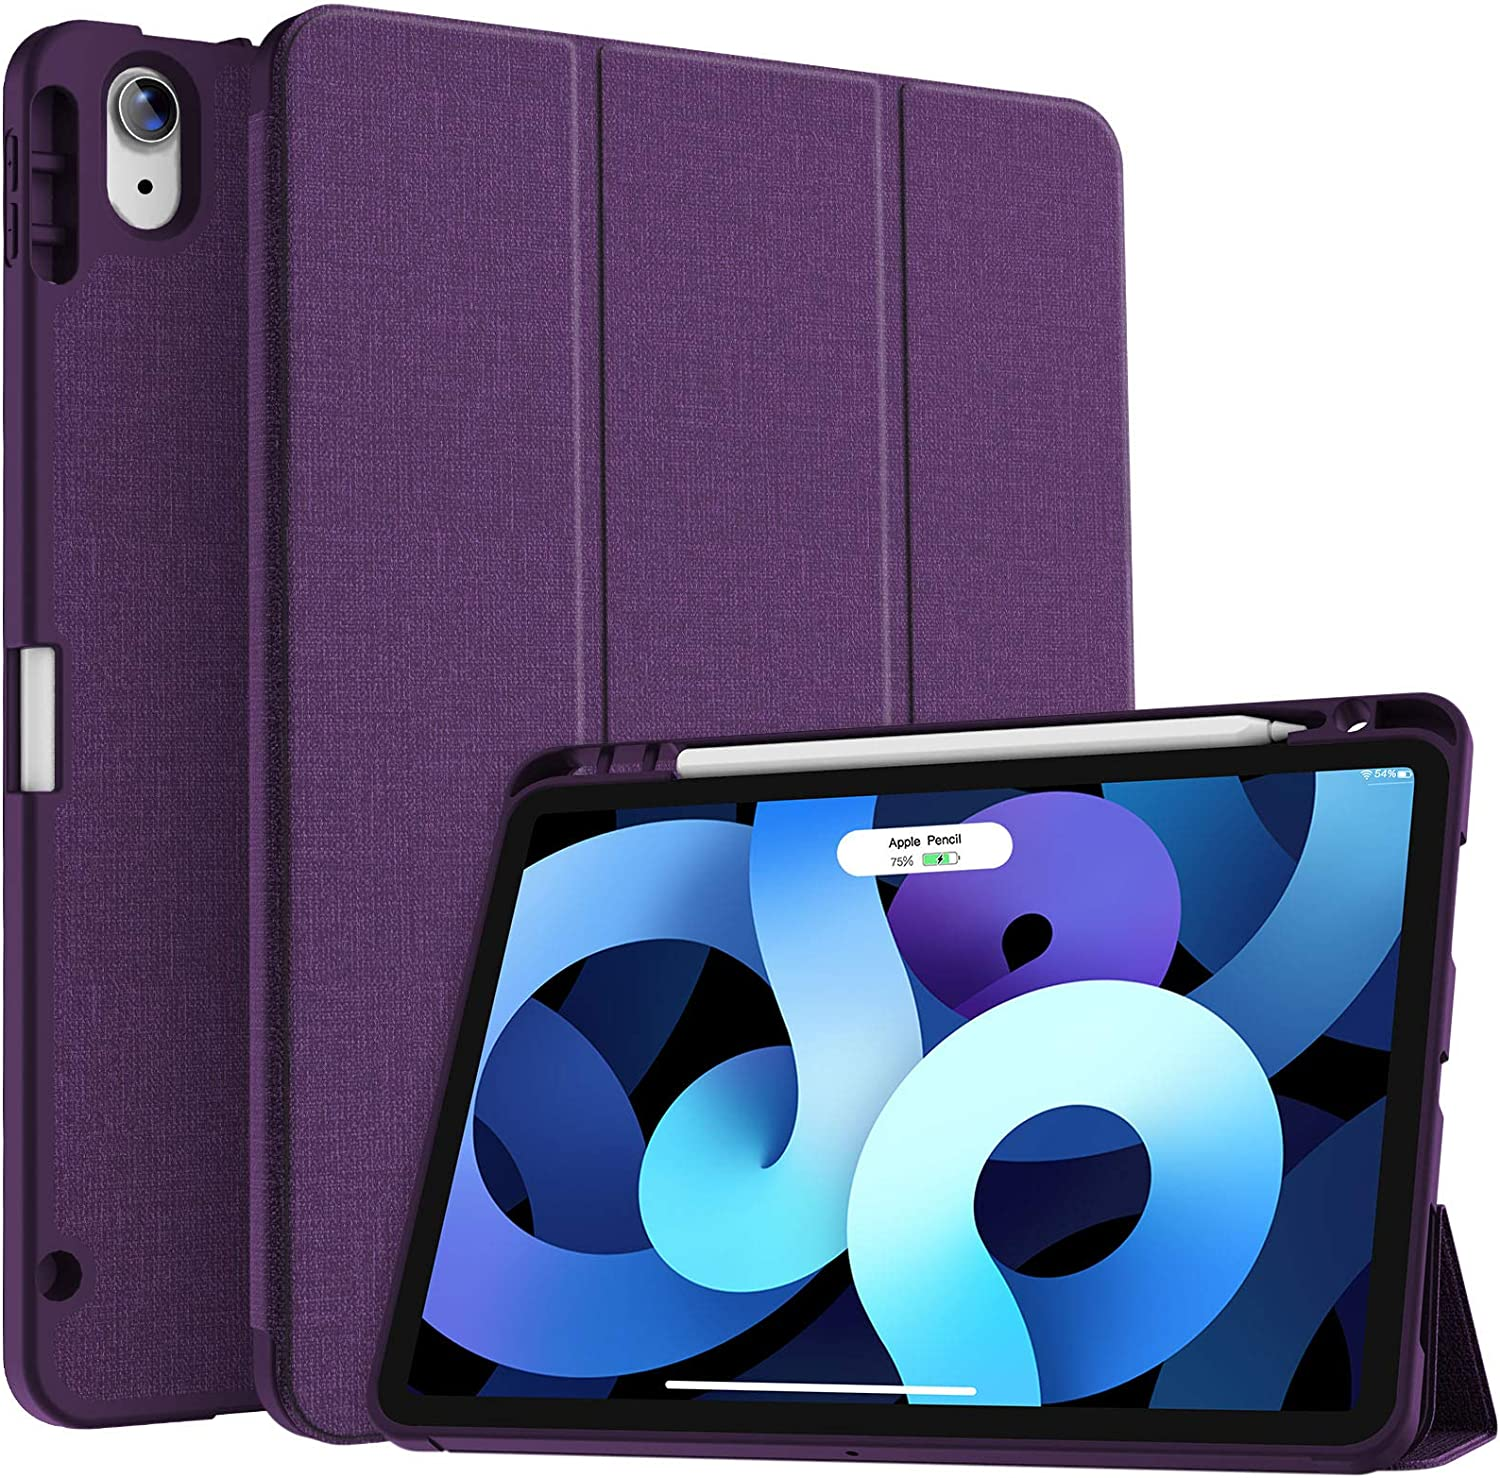 Soke iPad Air 4 Case 10.9 Inch 2020 with Pencil Holder - [Full Body Protection + Apple Pencil Charging+ Auto Sleep/Wake], Soft TPU Back Cover for 2020 New iPad Air 4th Generation,Purple